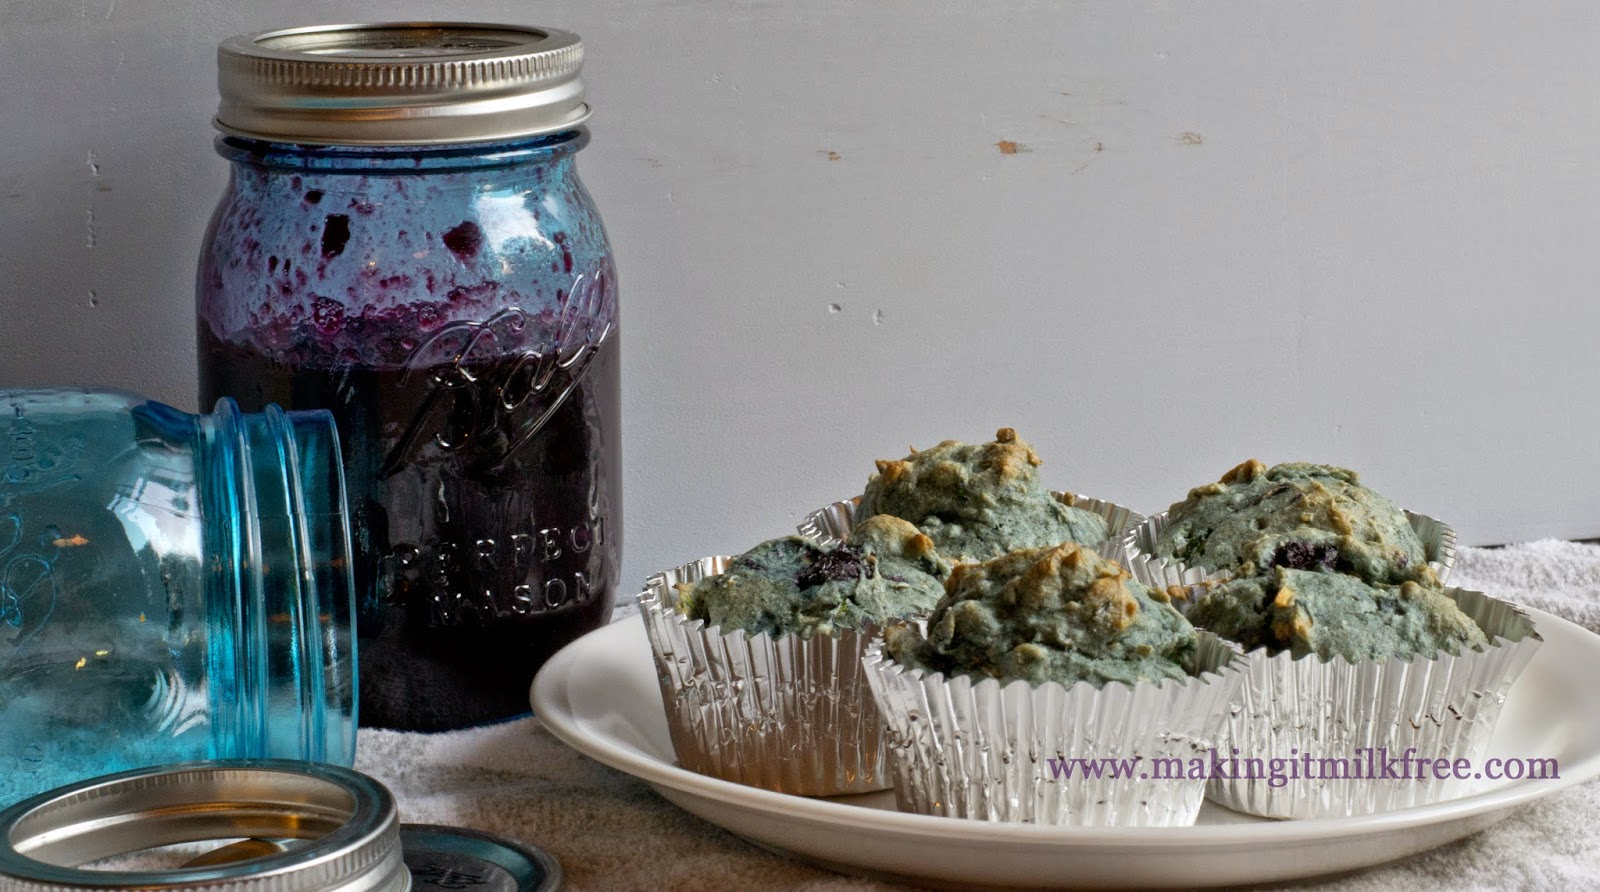 #glutenfree #dairyfree #allergyfriendly #blueberry